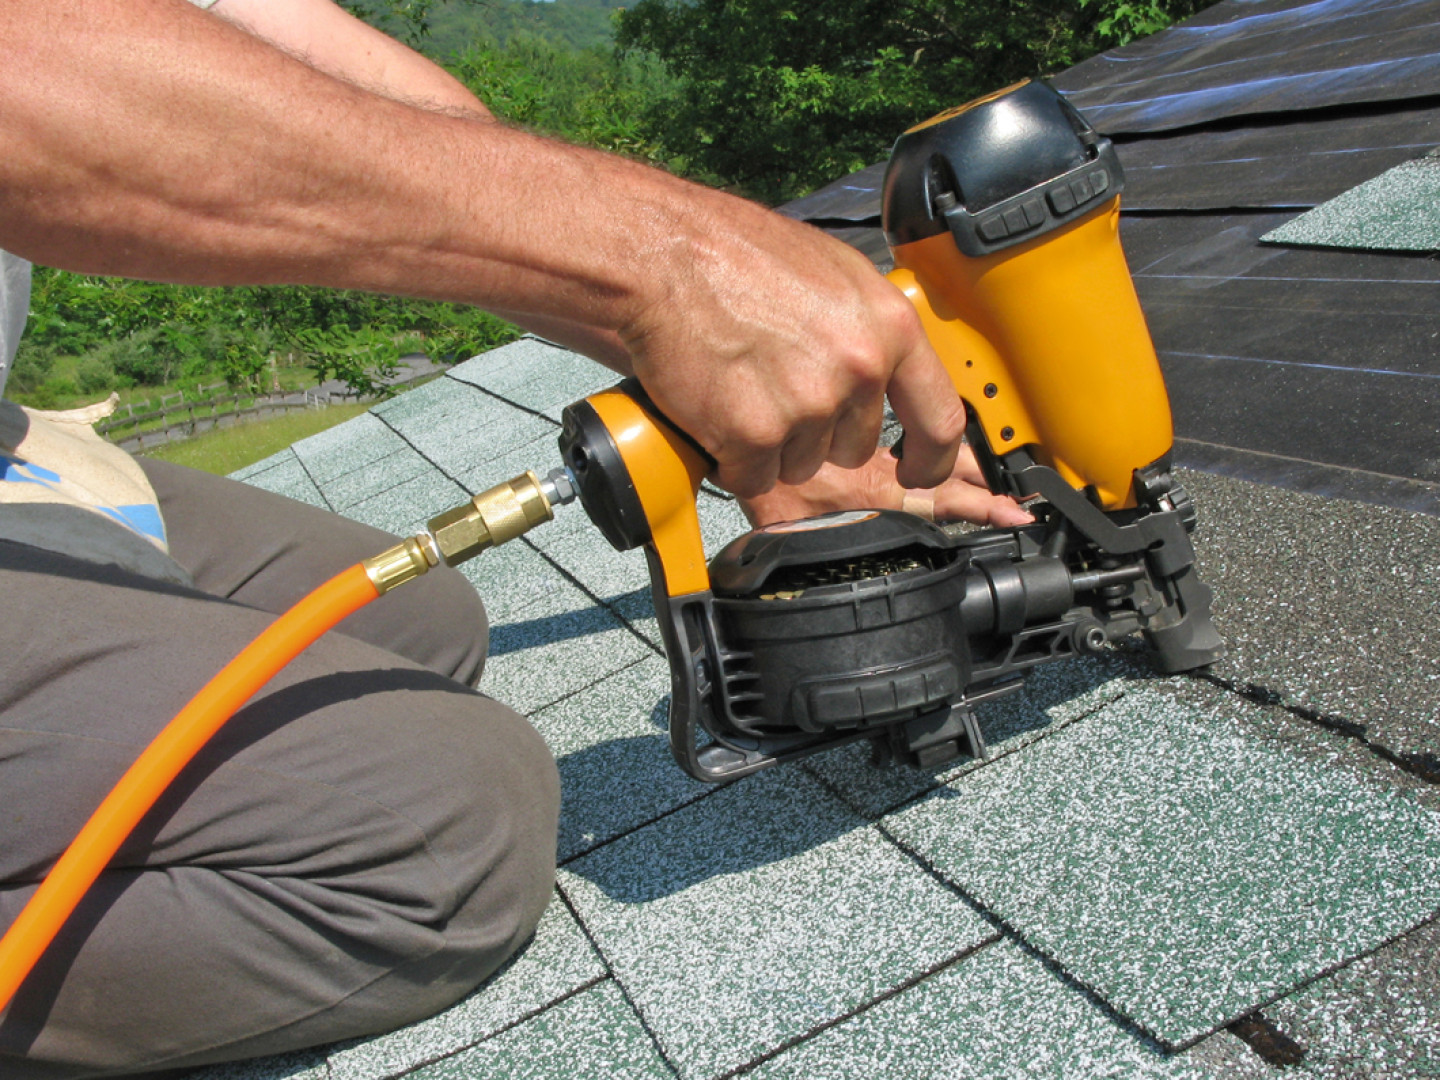 Roof Repair Shouldn't Be One-Size-Fits-All